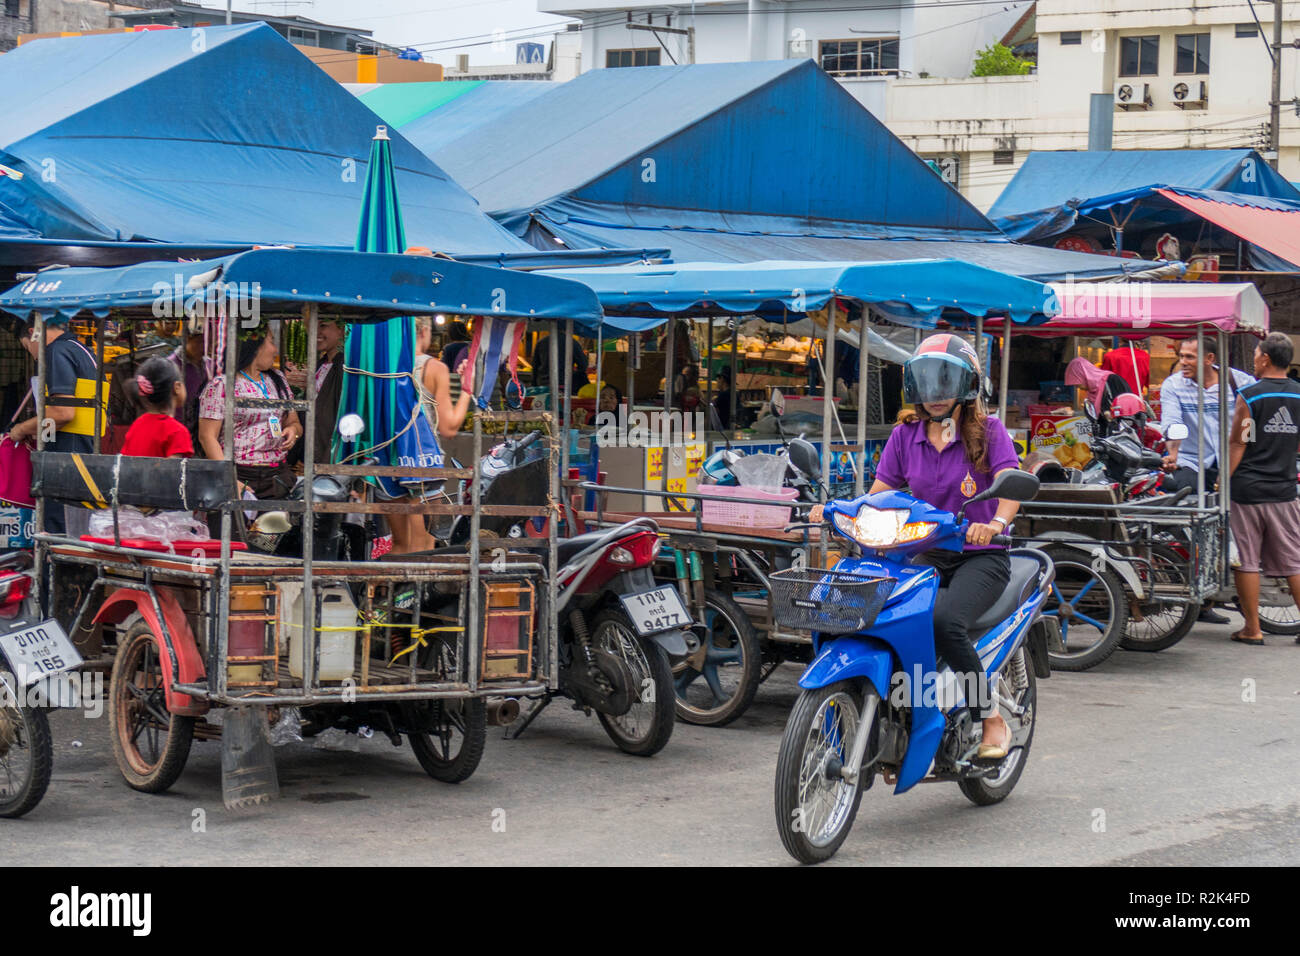 Scooter In Thailand Stock Photos & Scooter In Thailand Stock